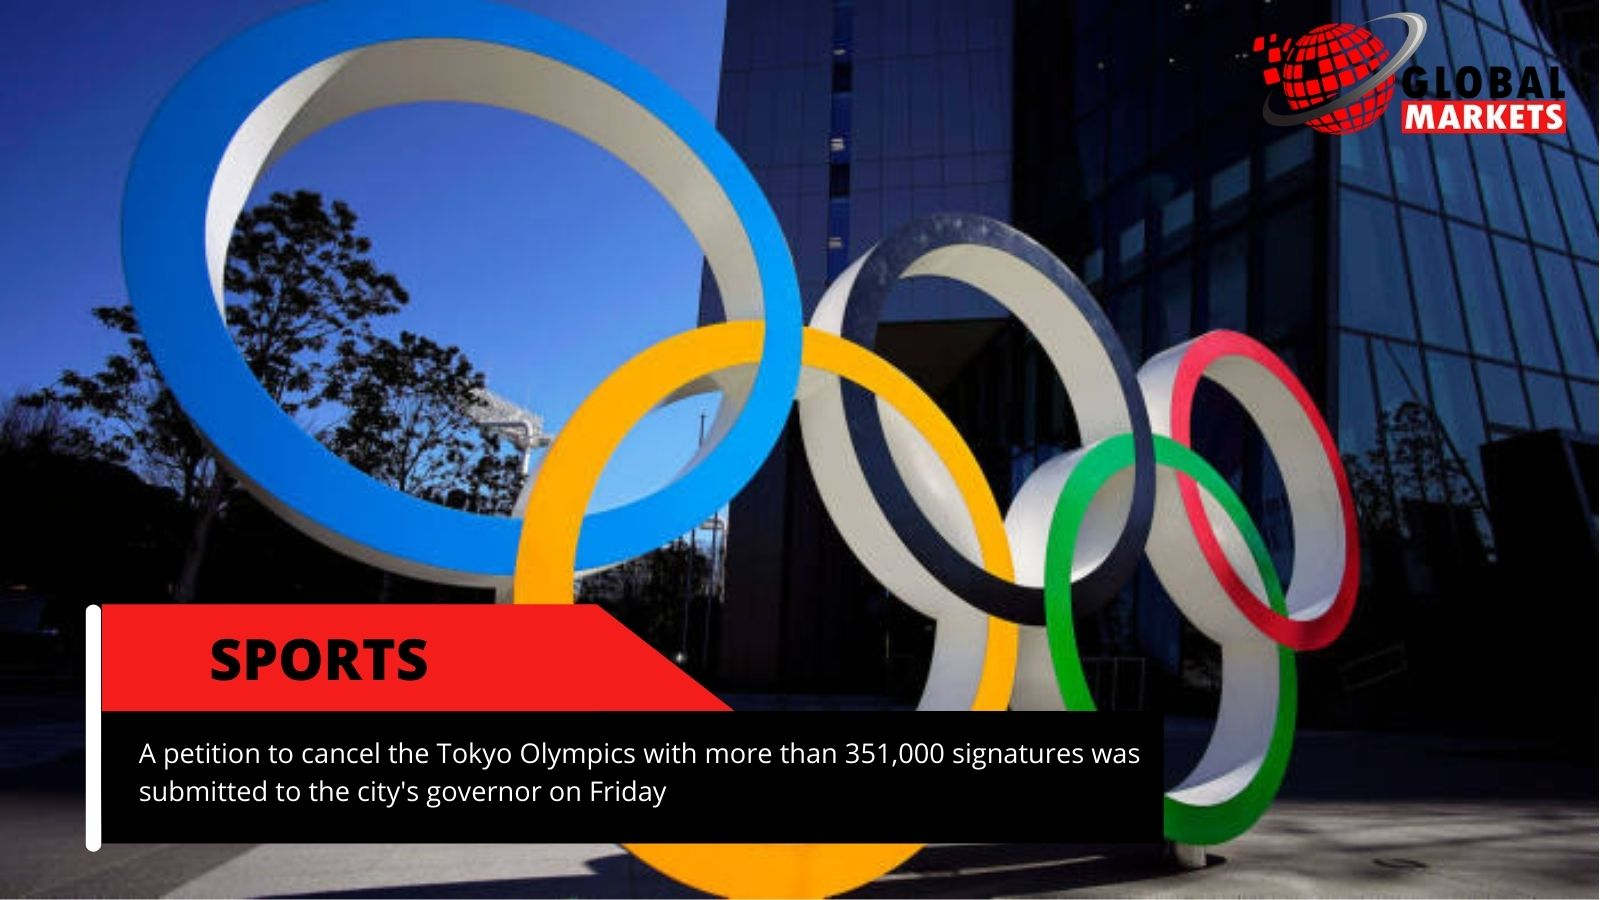 A petition to cancel the Tokyo Olympics was submitted to the city's governor